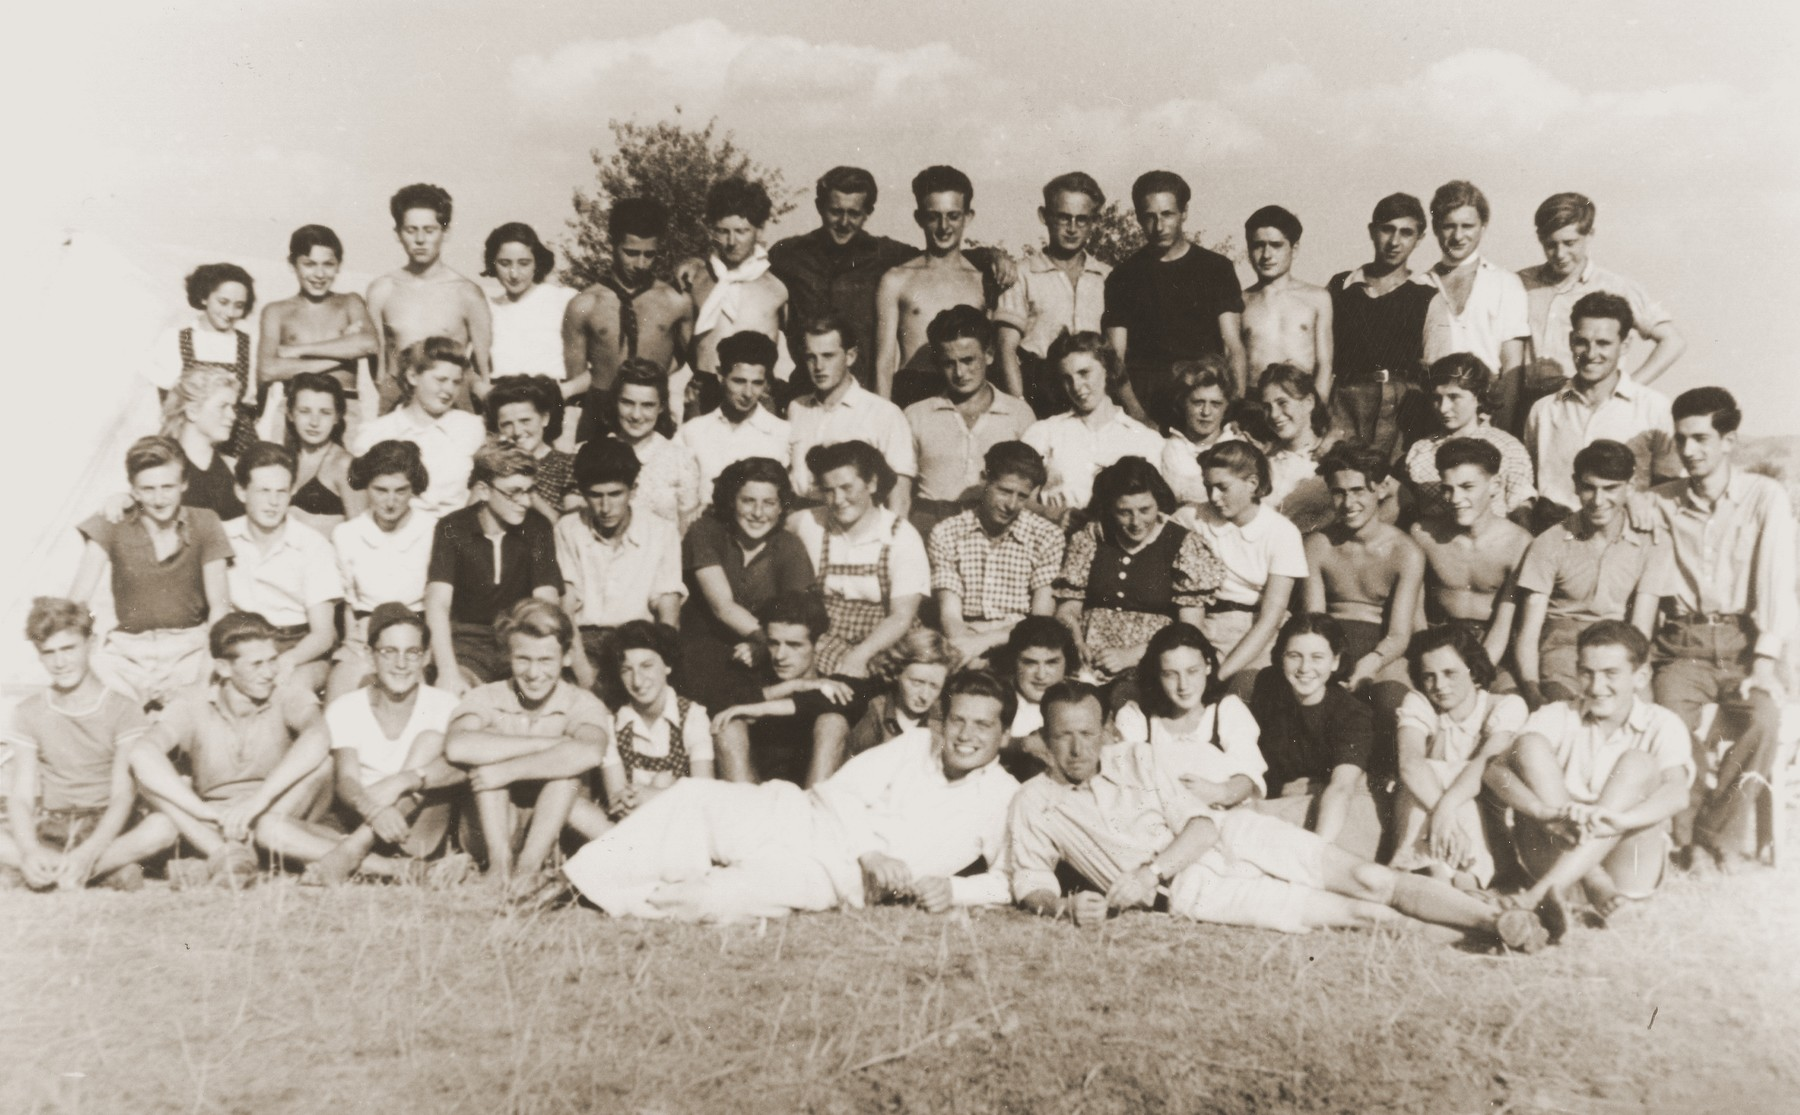 Group portrait of Zionist youth from the Kladovo transport.  The majority of those pictured immigrated to Palestine in March 1941.    Erich Nachaeuser is pictured standing in the top row, fifth from the left.  Ruth Weisz is second row, sixth from the right and Seppl Baumgartner is to her left.